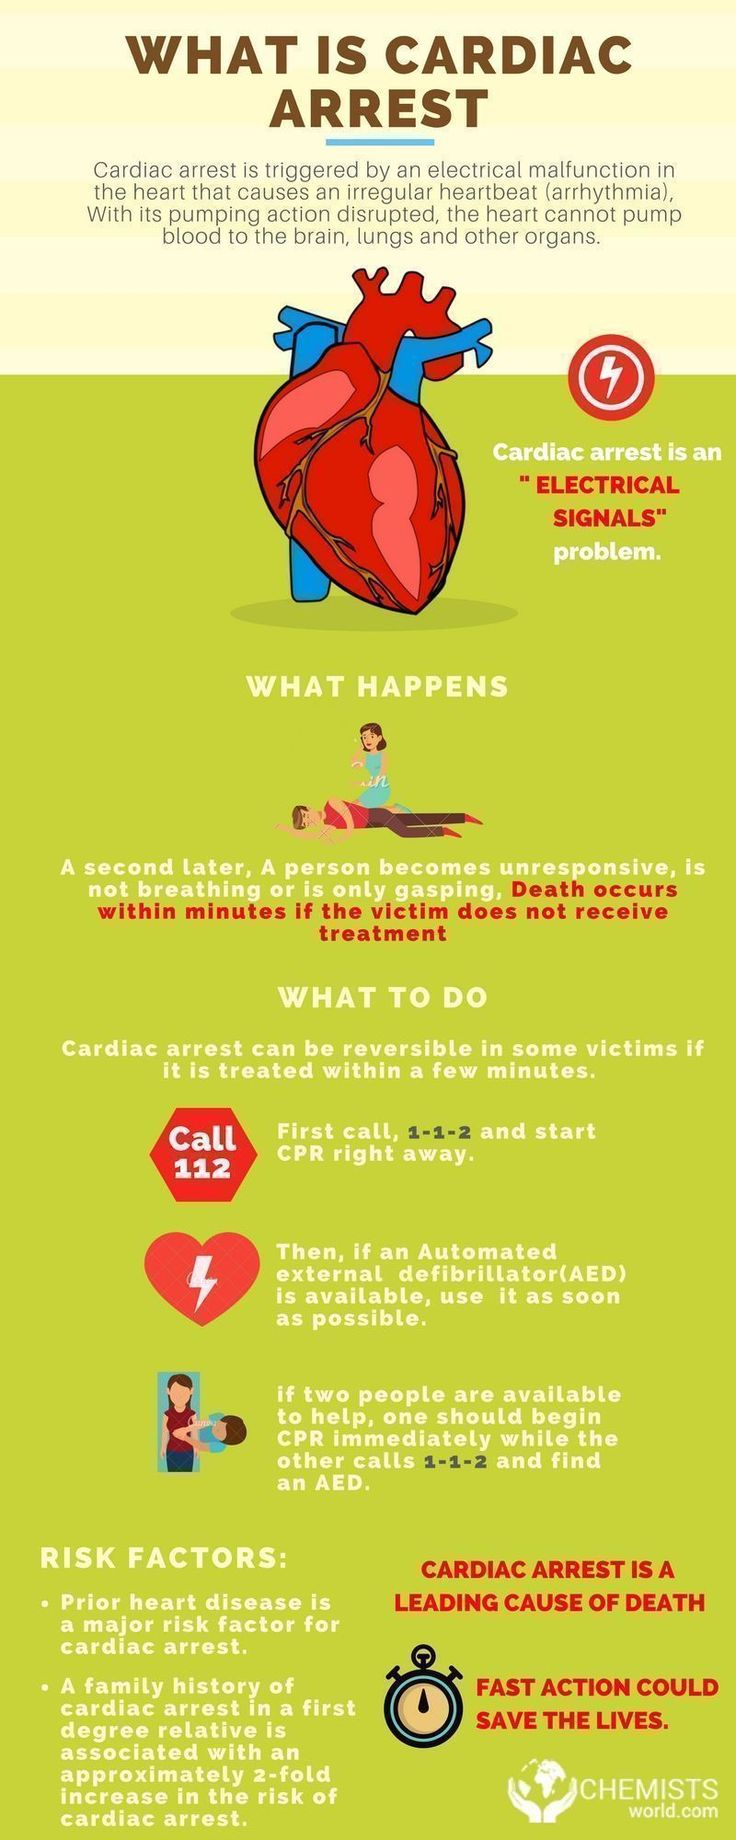 Cardiac Arrest is the abrupt loss of heart function, even in seemingly fit people. It is not necessarily a person with cardiac arrest has diagnosed heart disease.Here are some tips to share with family and friends so that they can take quick action to save someone's life from cardiac arrest in the future. #CardiacArrest #Heart #Health #Wellness #HeartDisease #cardiacfitness